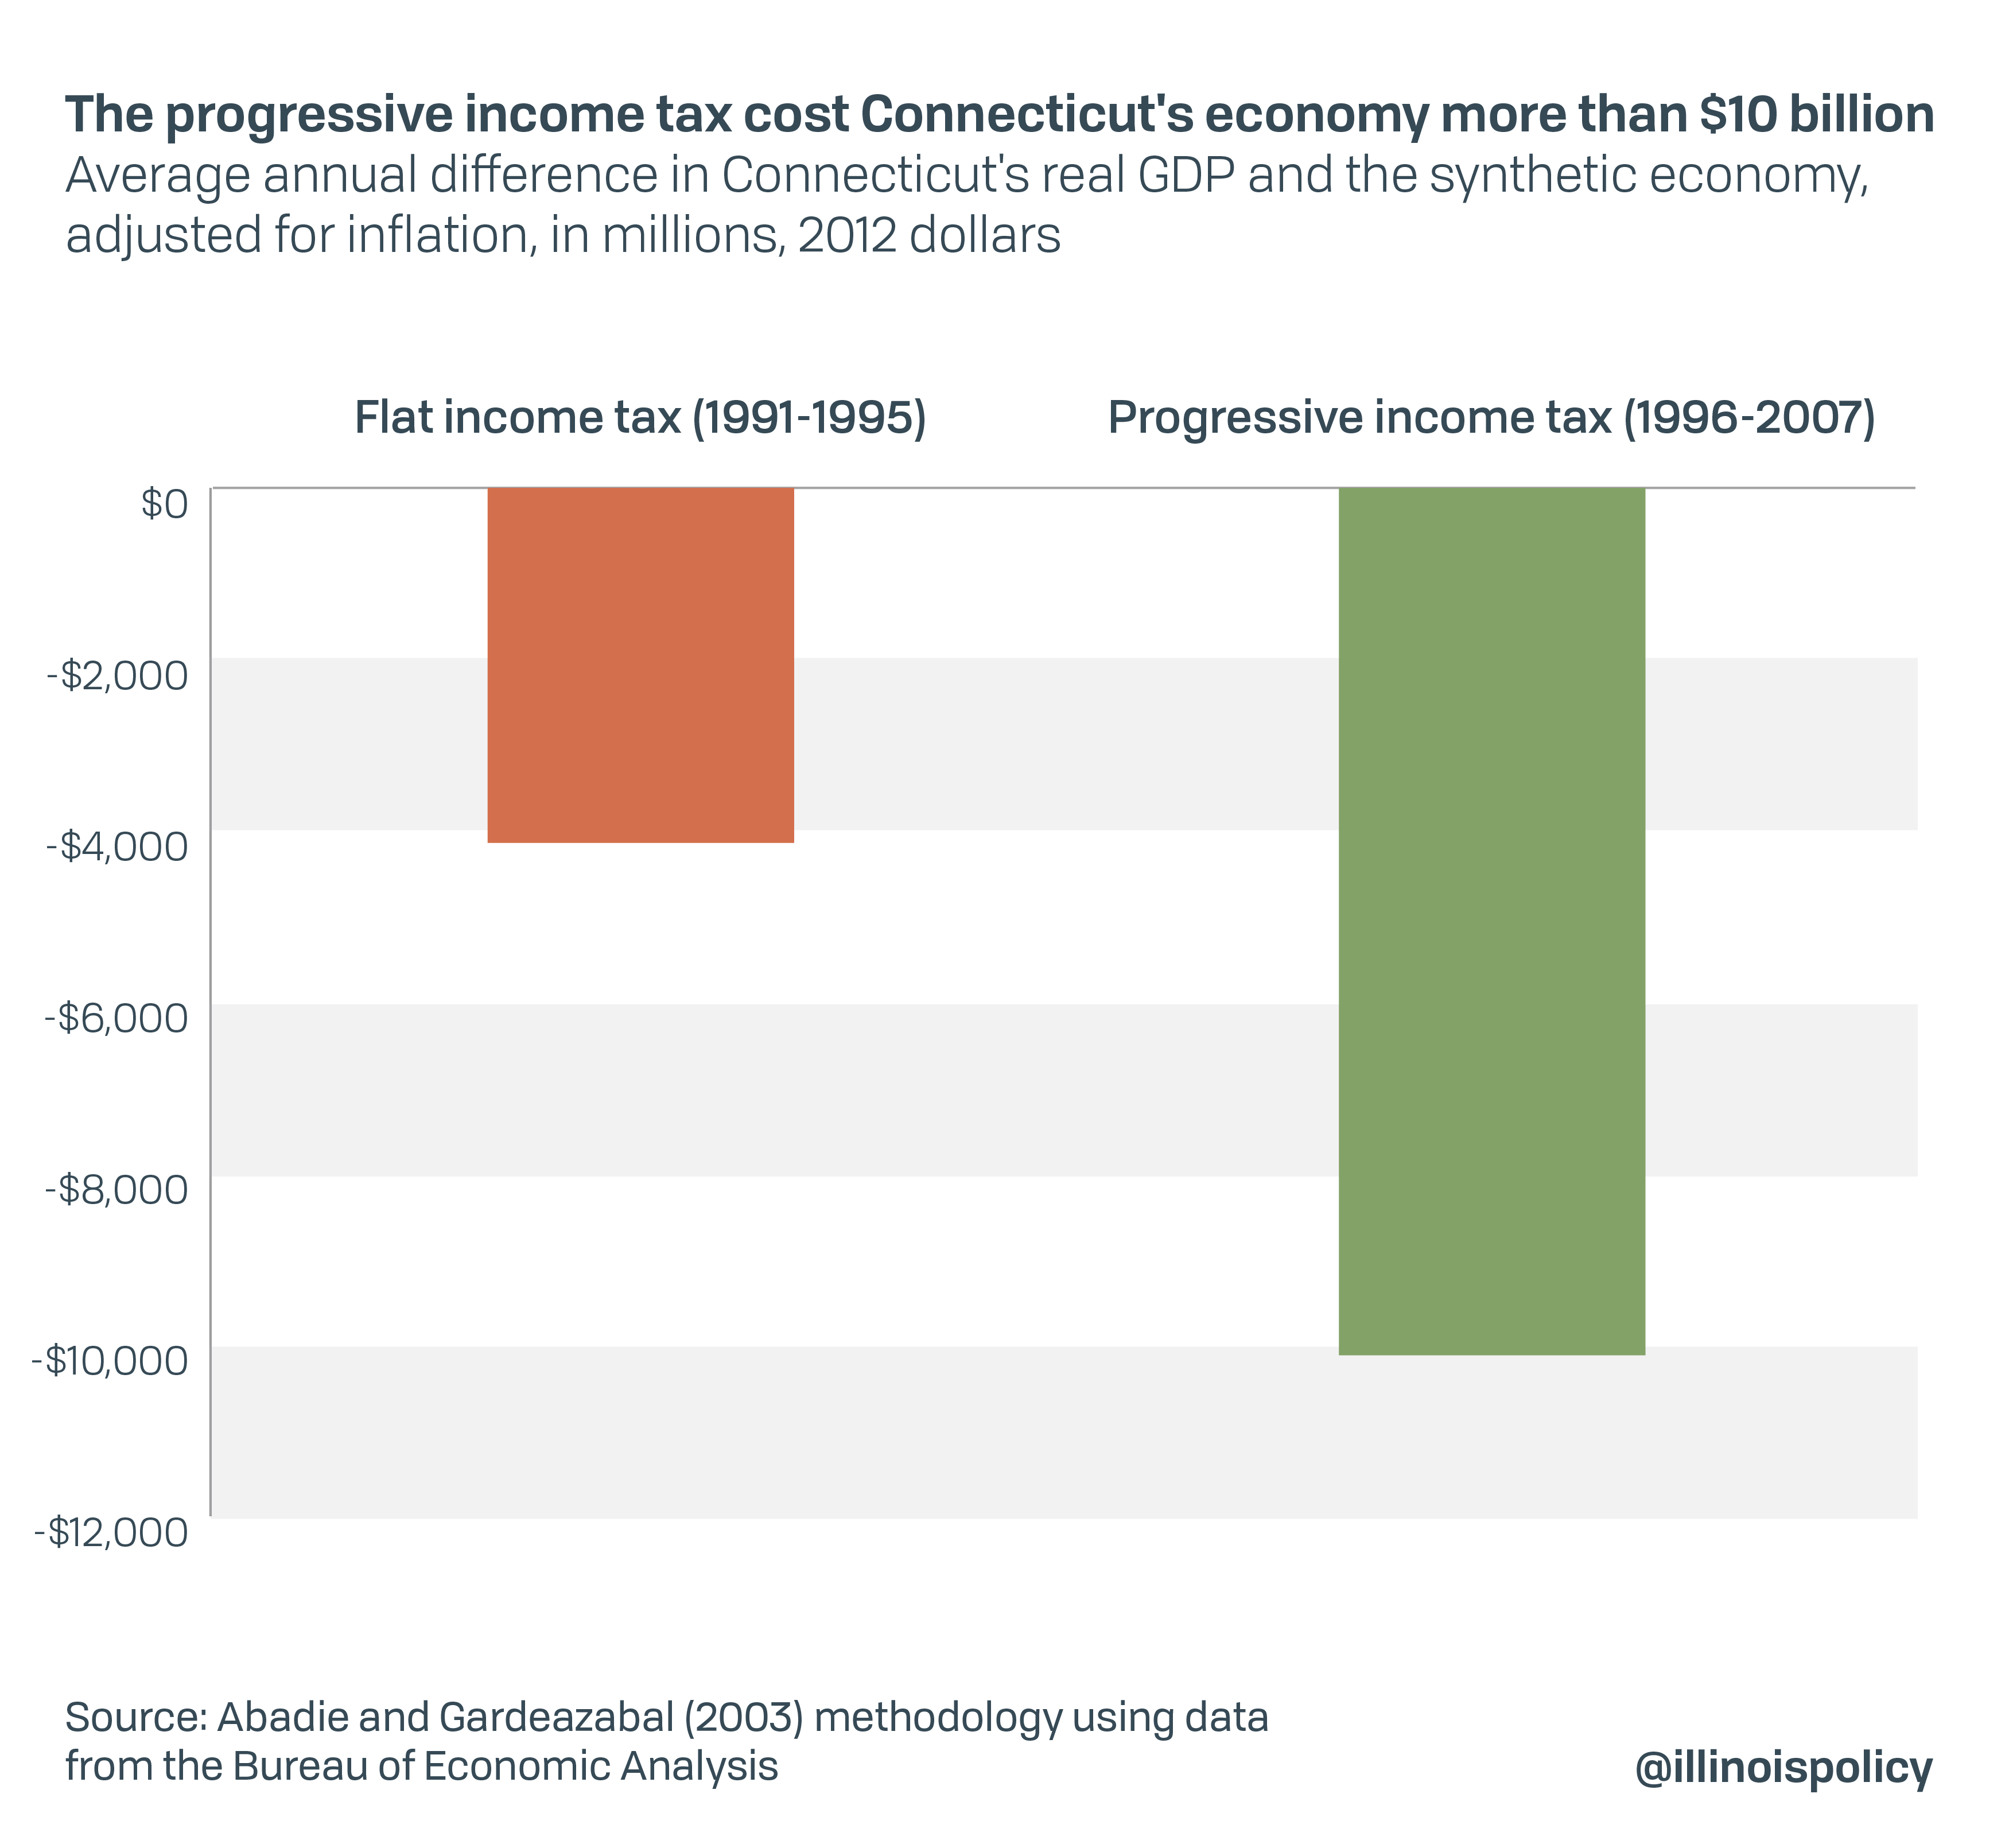 The progressive income tax cost Connecticut's economy more than $10 billion